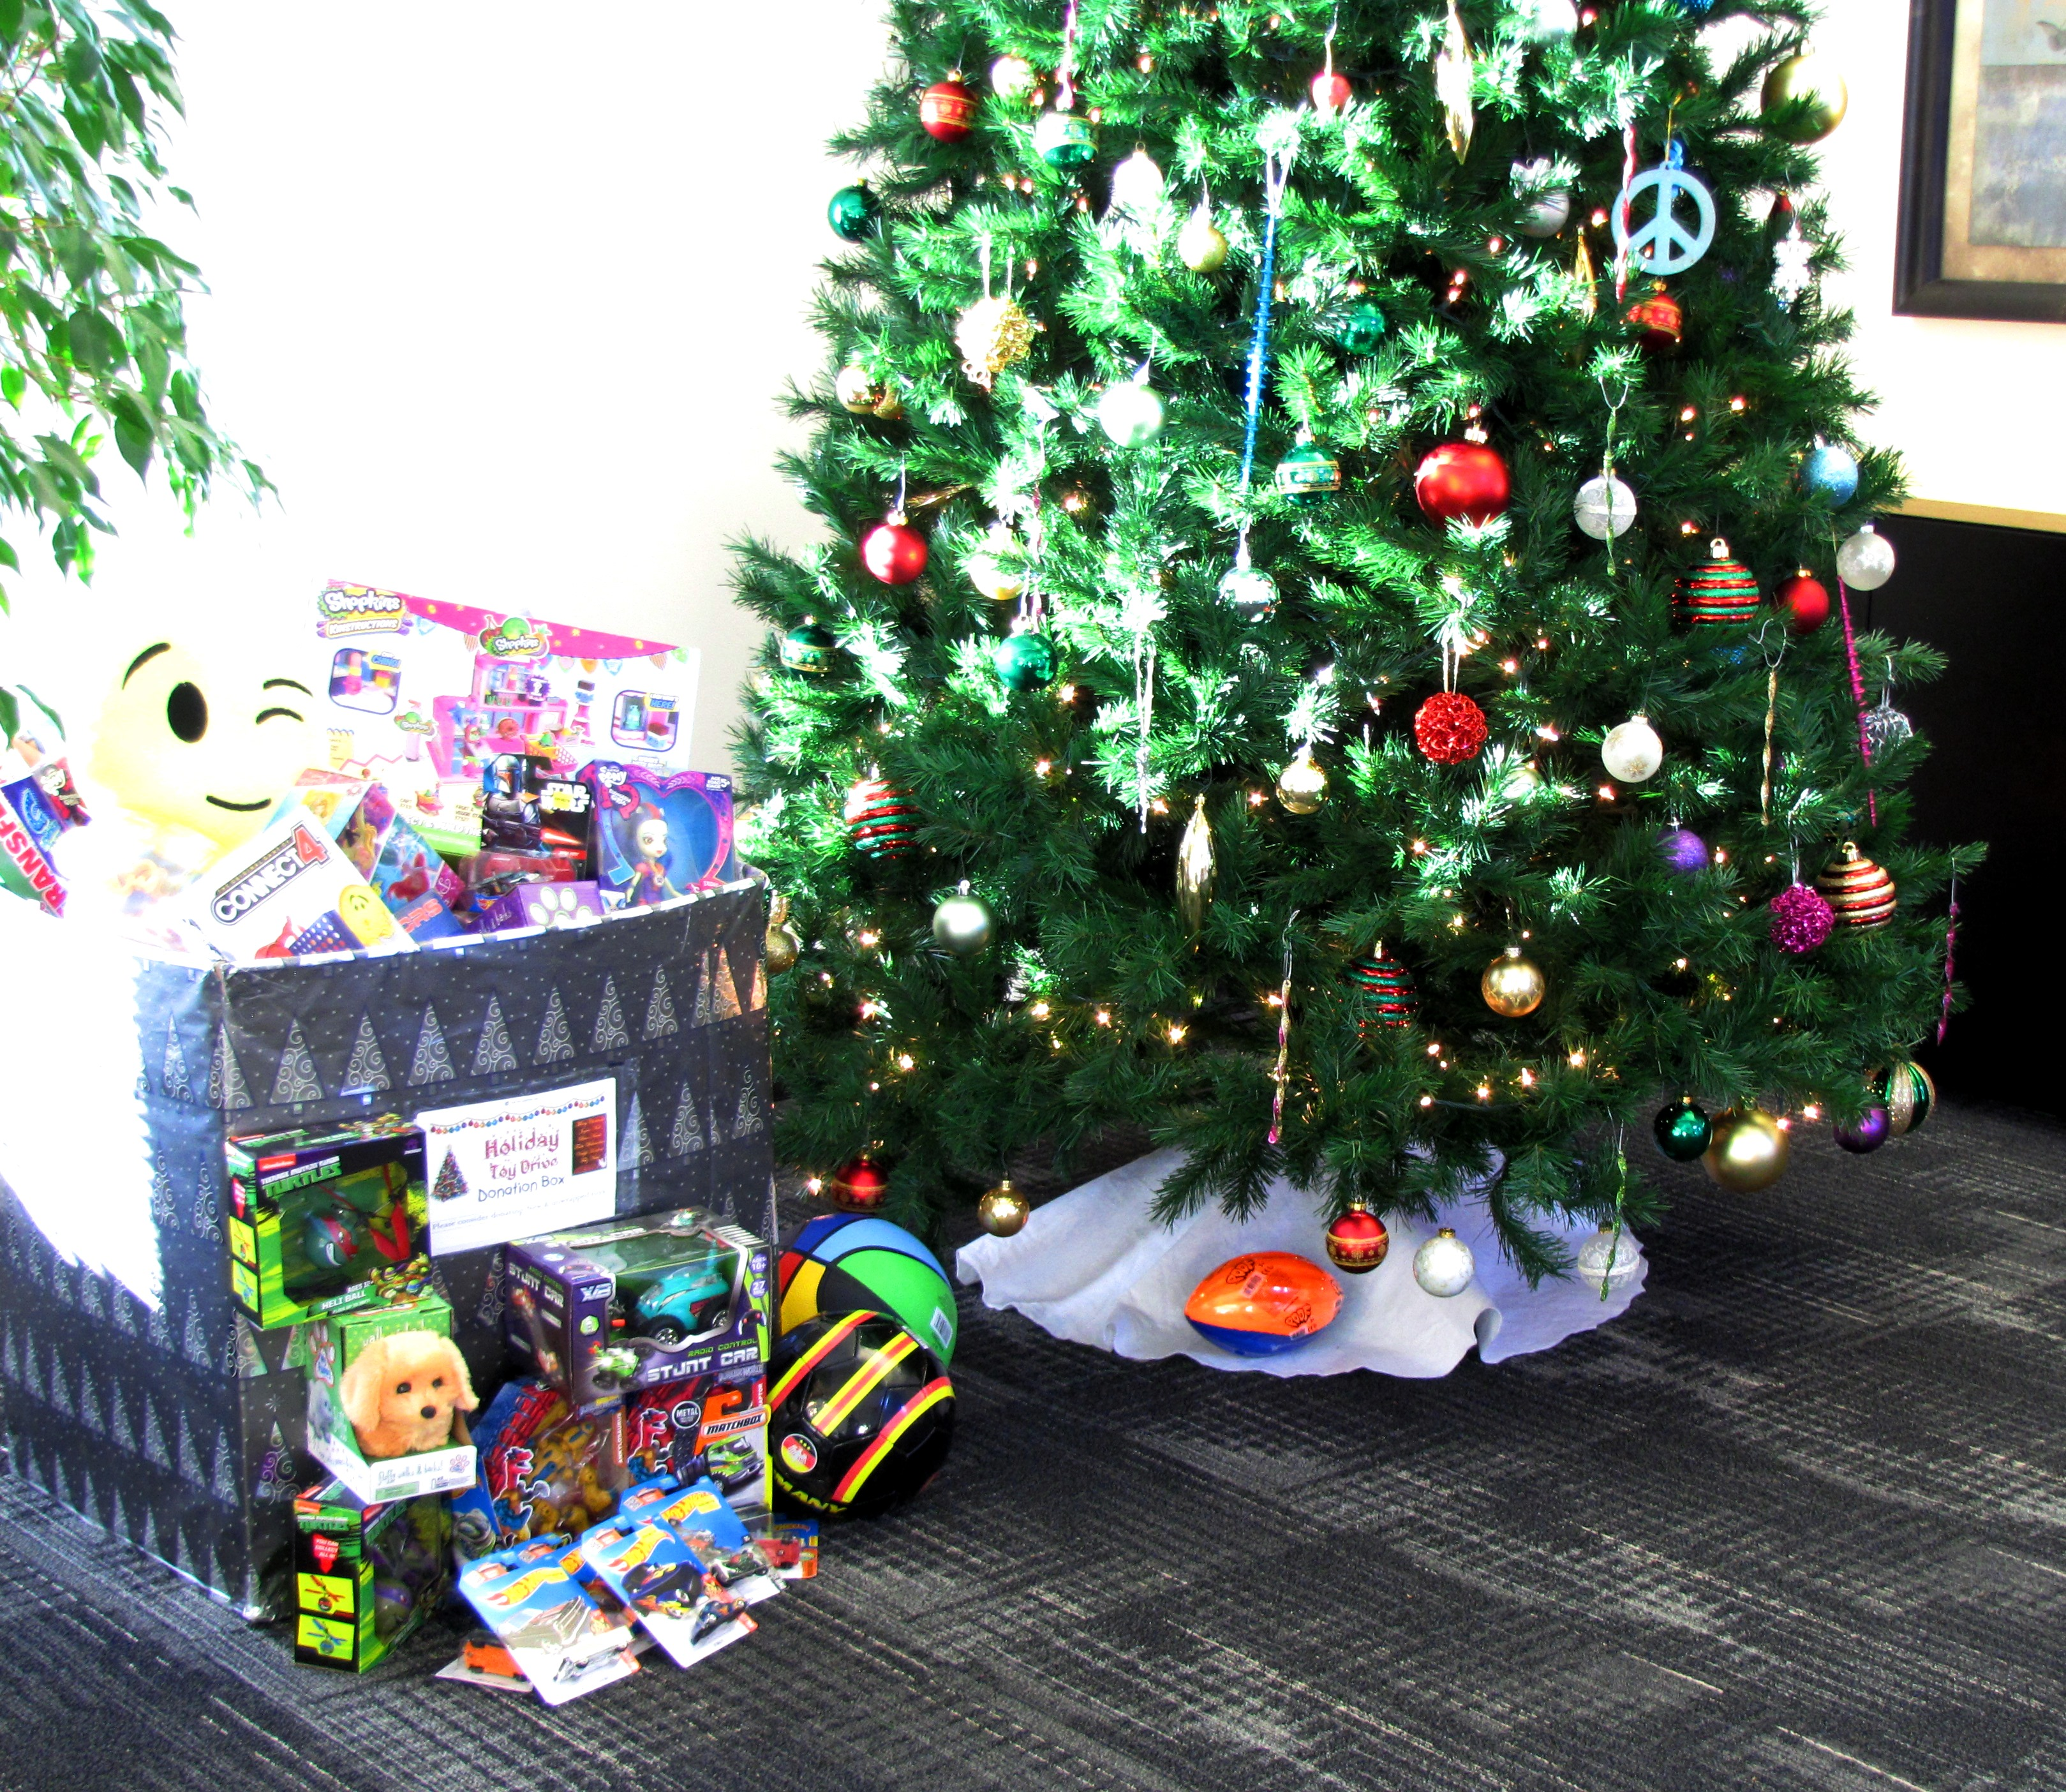 AI Spreads Holiday Cheer by Donating to Toys for Tots